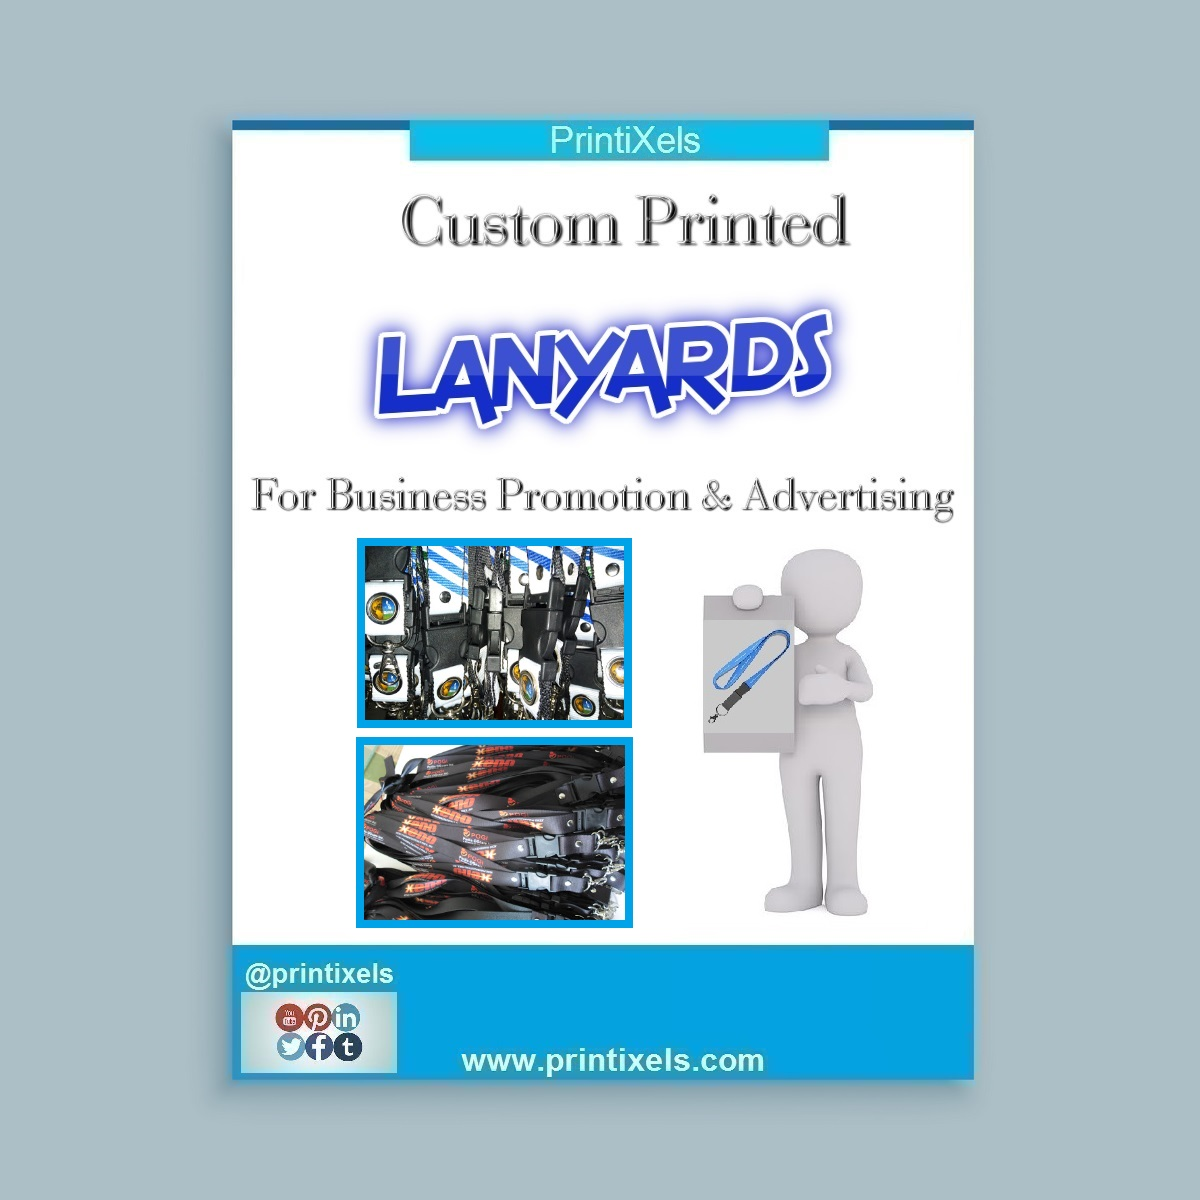 Custom Printed Lanyards For Business Promotion & Advertising